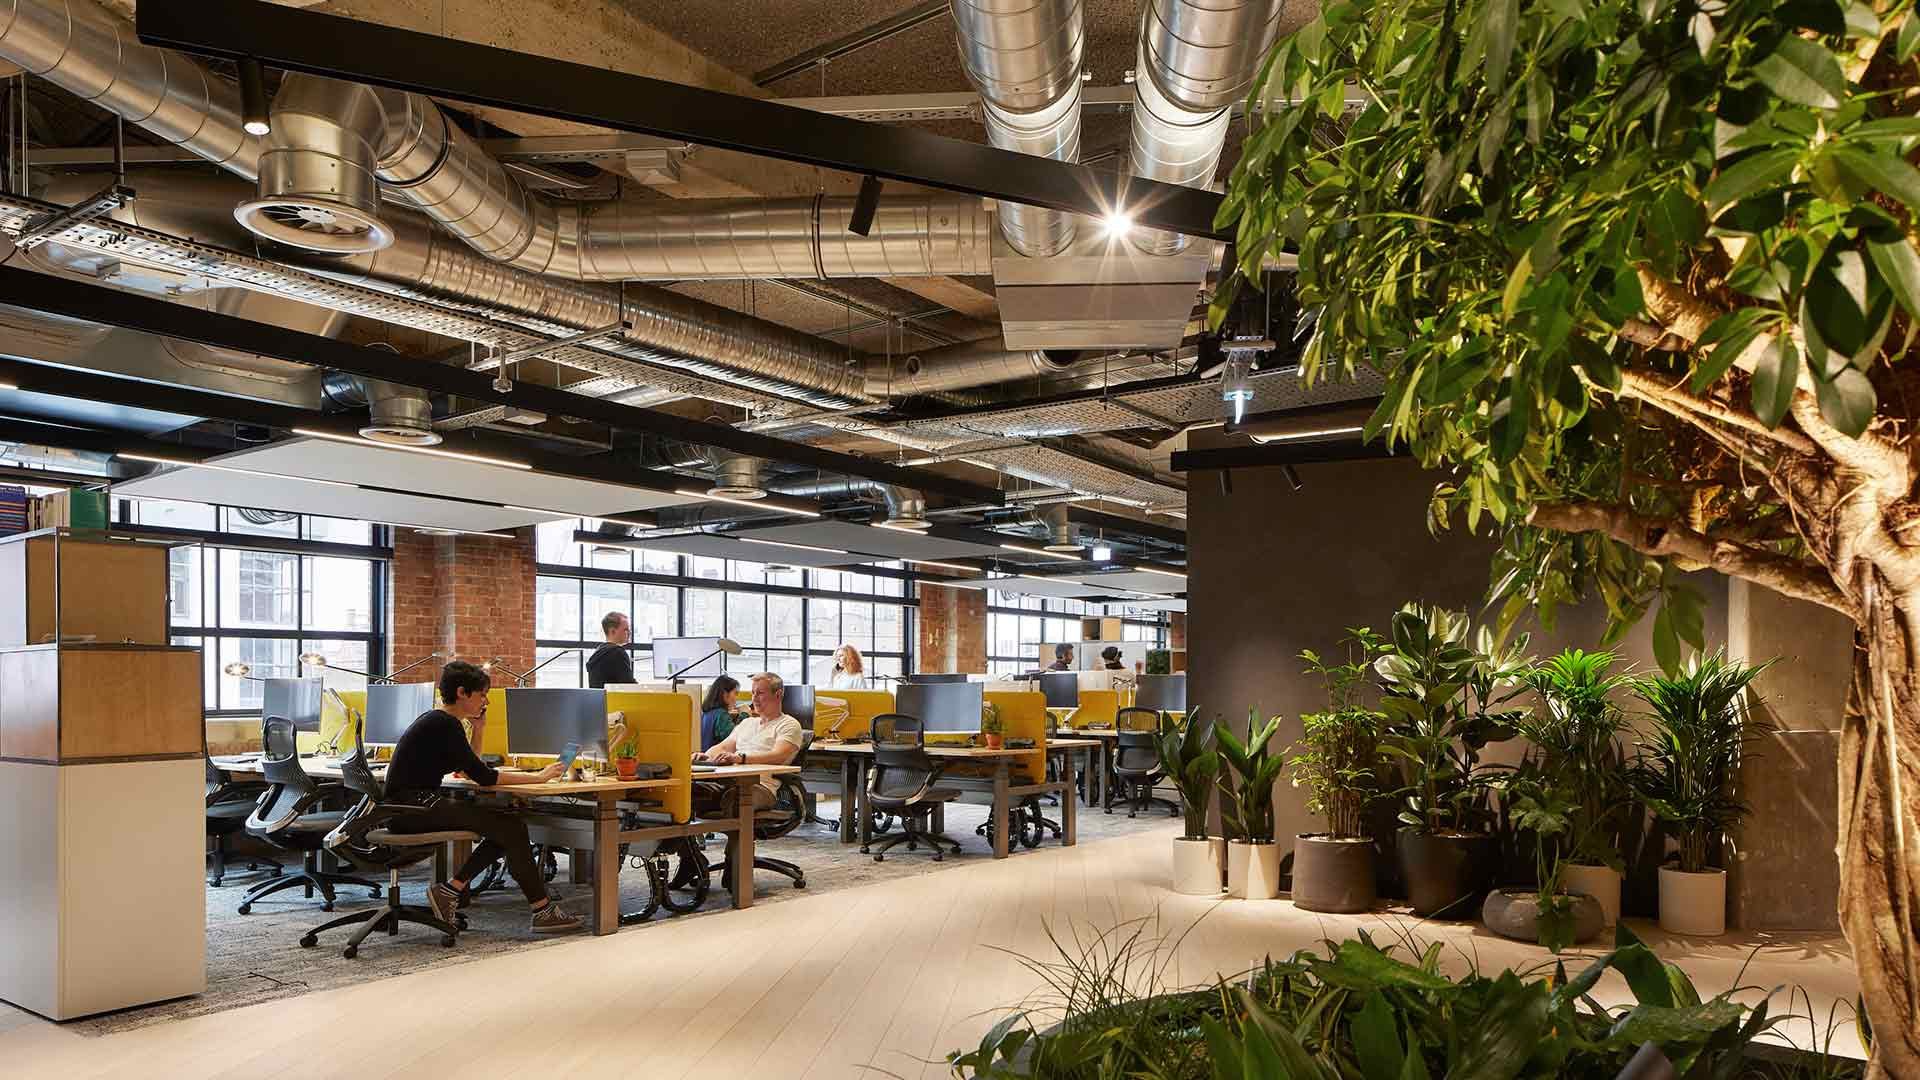 Lighting Scheme Open Plan Office Workstations Diffused Linear Ceiling Lights Track Spotlight System Industrial Architecture Exposed Services Lighting Design Consultants Nulty